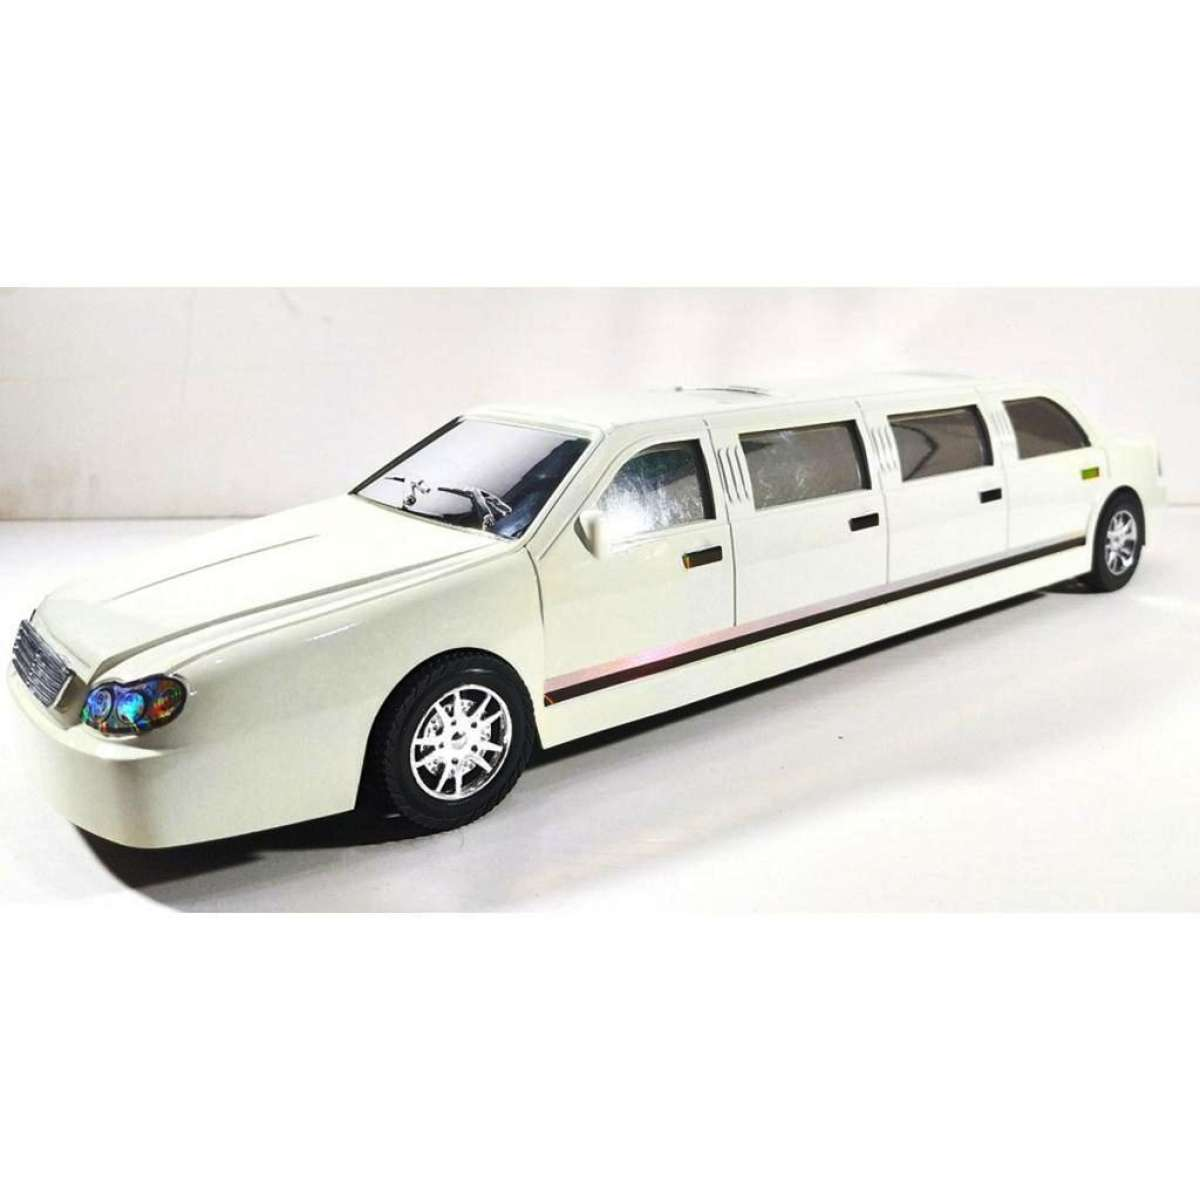 Limousine Car Toy For Kids ( Boys & Girls ) Big Size: 18 Inches